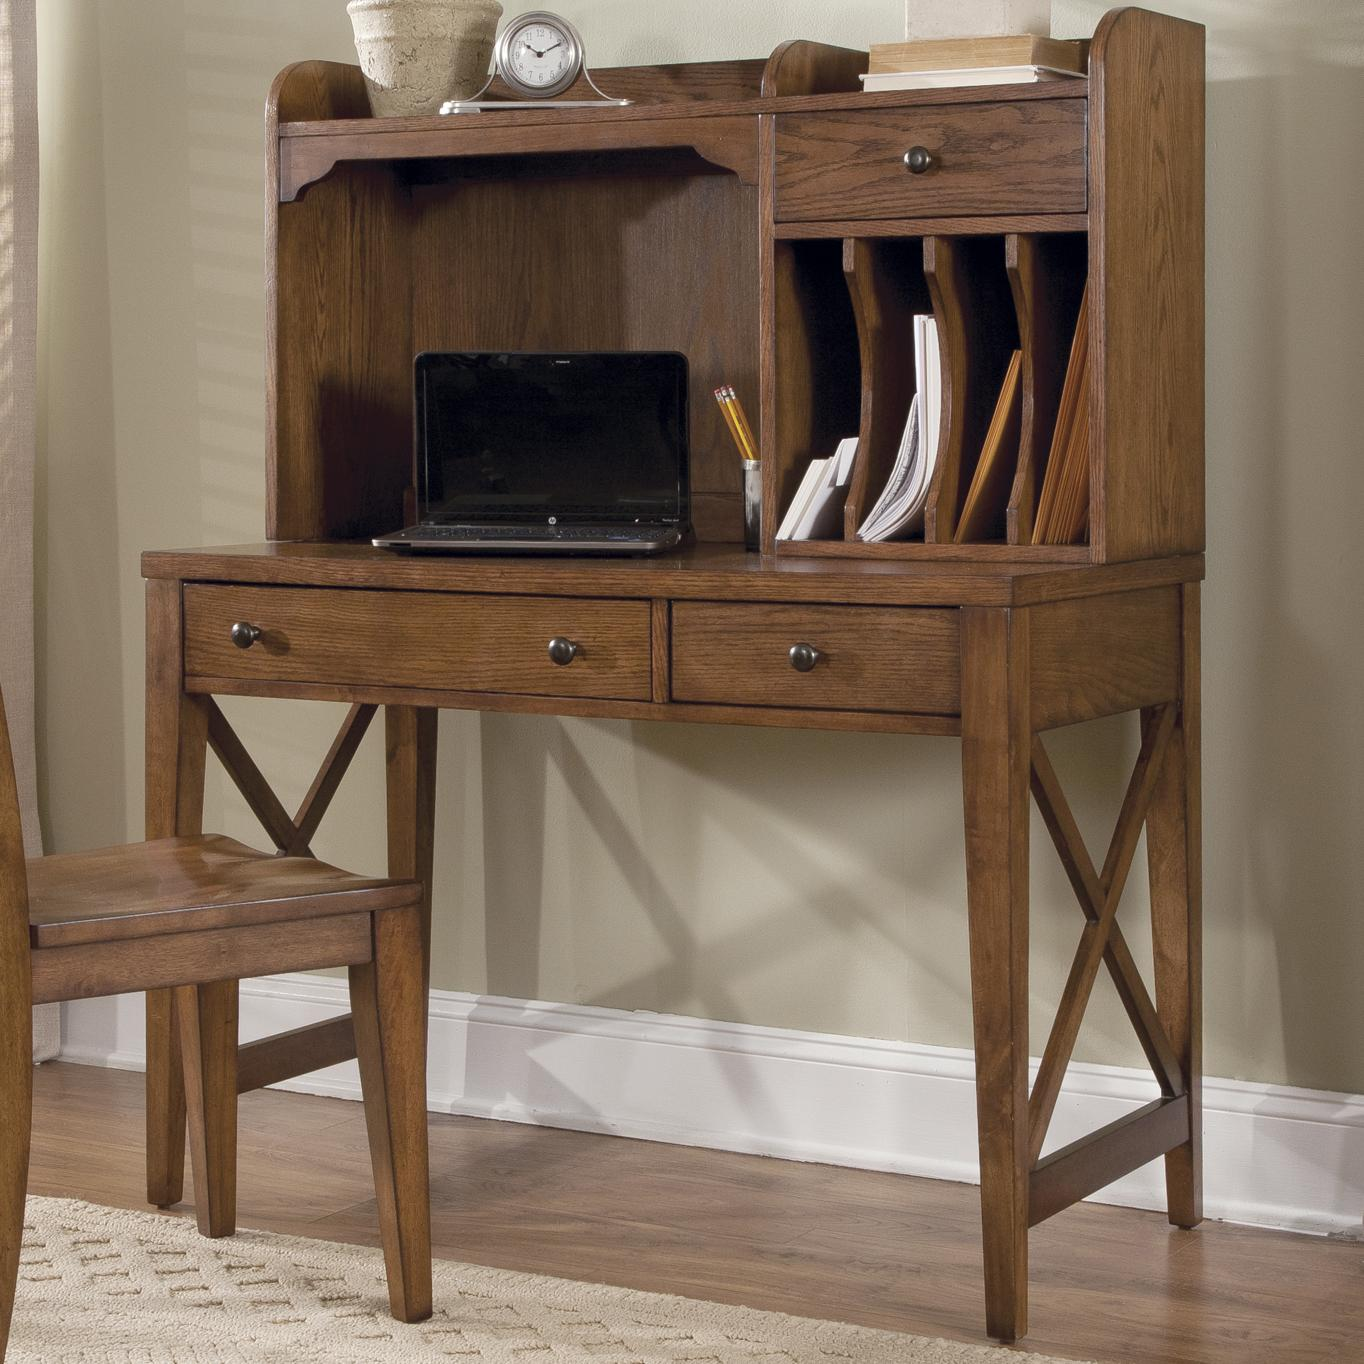 Hearthstone Desk and Hutch by Liberty Furniture at Lapeer Furniture & Mattress Center